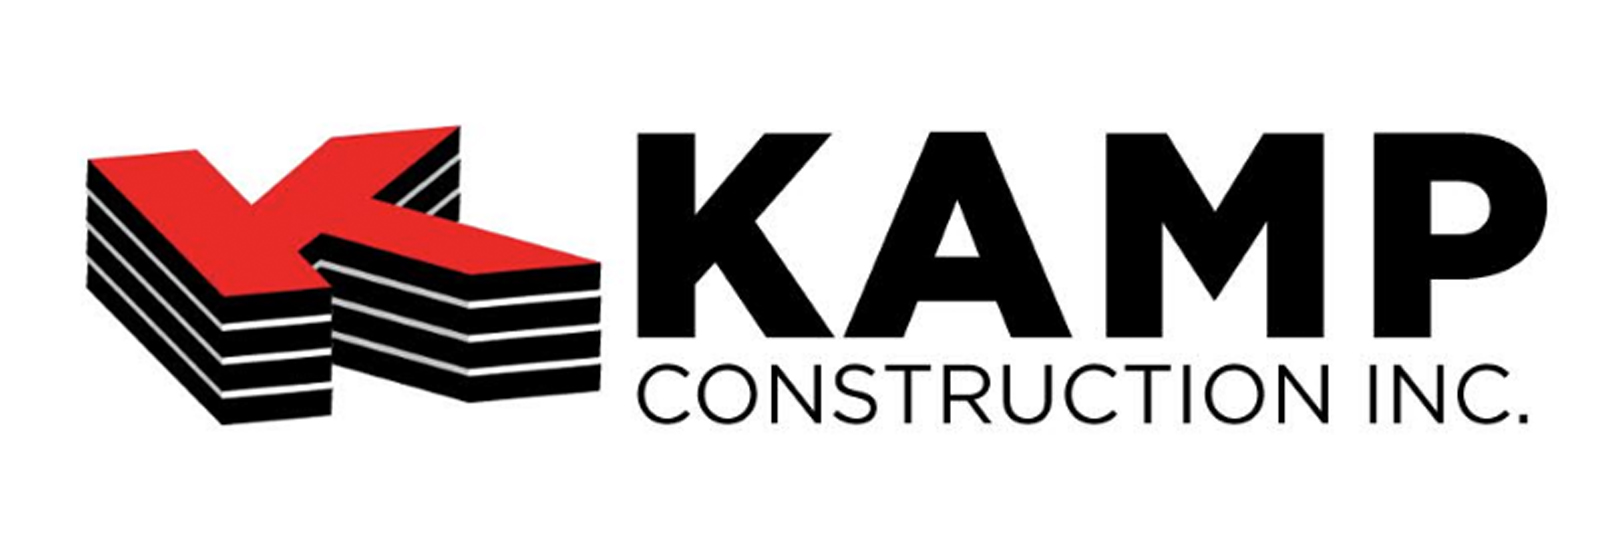 http://kampconstruction.ca/wp-content/uploads/2017/01/KAMP-Construction-Logo-Final.jpg